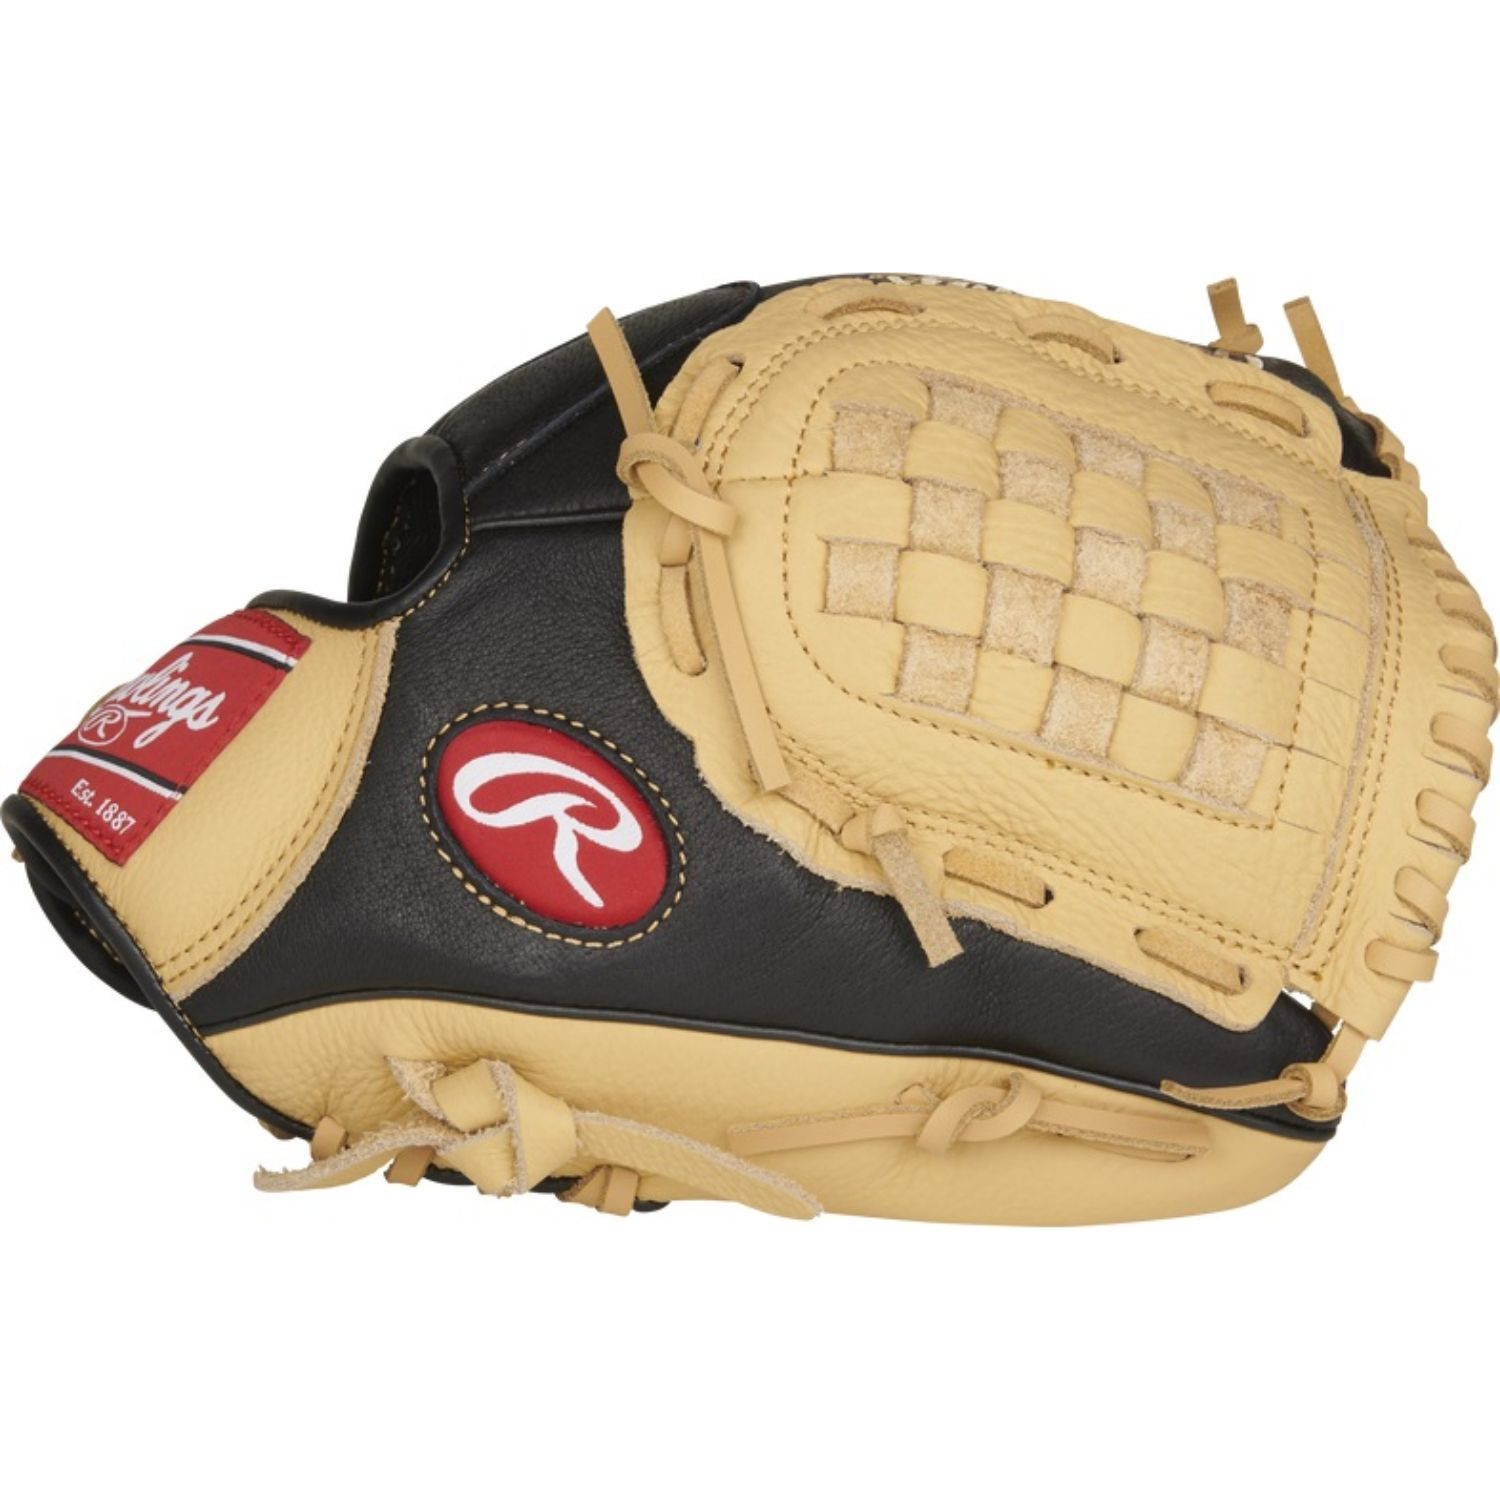 Rawlings 11 Inch Prodigy Youth Infield Glove LH